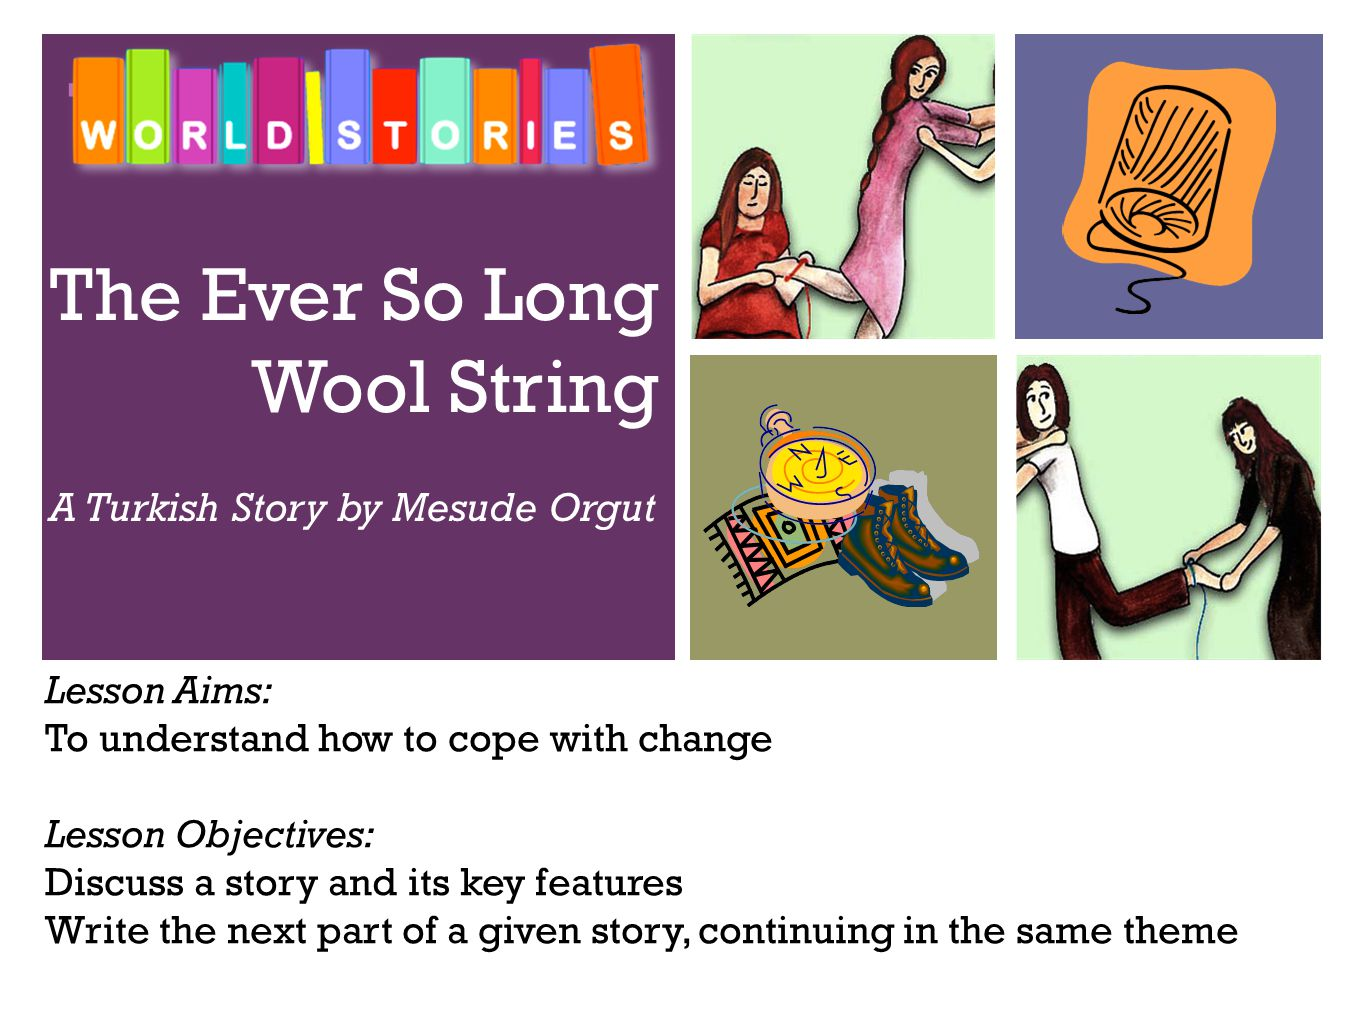 + The Ever So Long Wool String A Turkish Story by Mesude Orgut Lesson Aims: To understand how to cope with change Lesson Objectives: Discuss a story and its key features Write the next part of a given story, continuing in the same theme